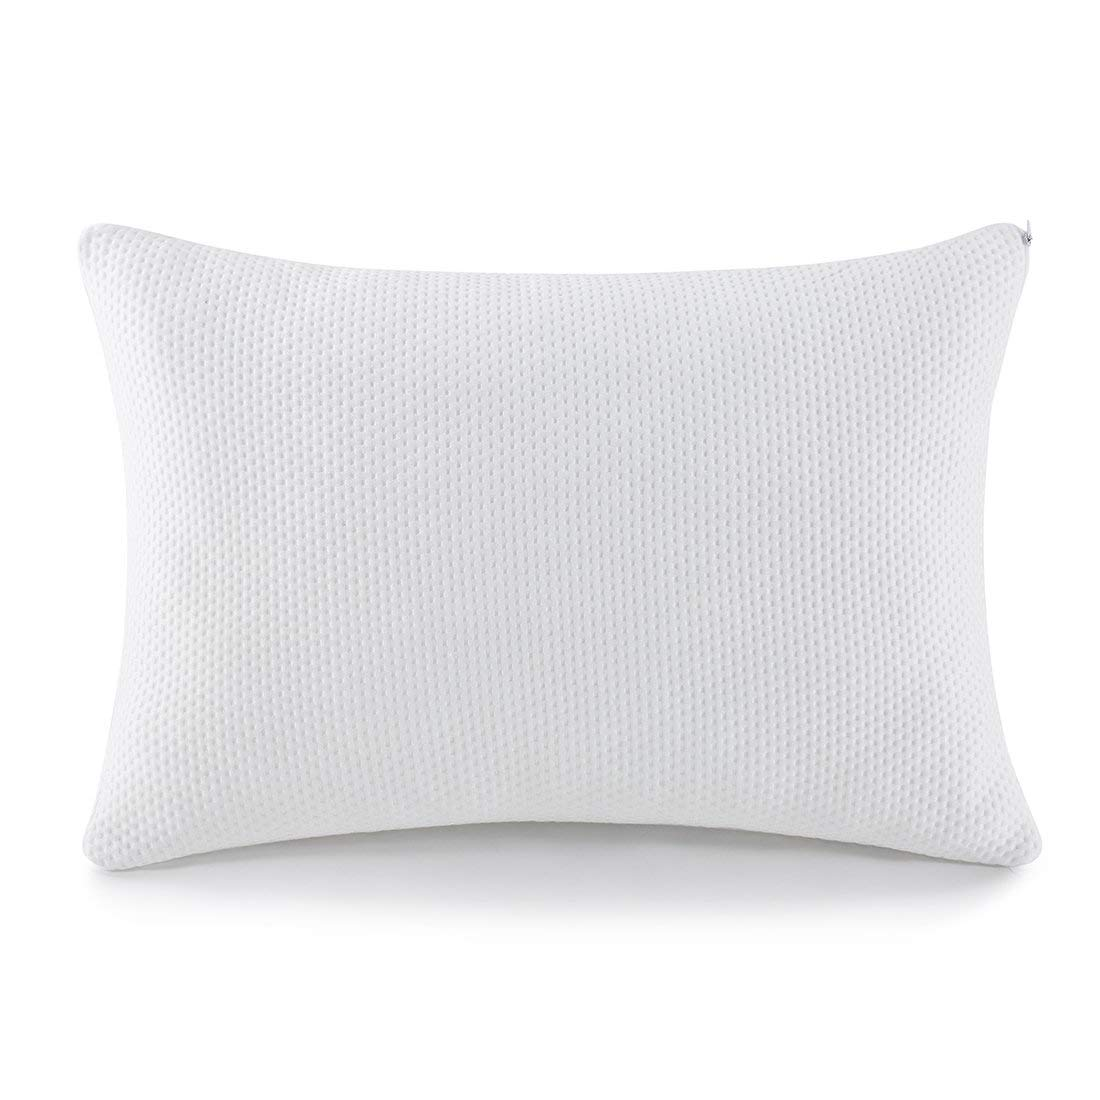 best memory foam pillows sleep Queen Size Cooling with Removable Washable Bamboo Bed cover oaskys